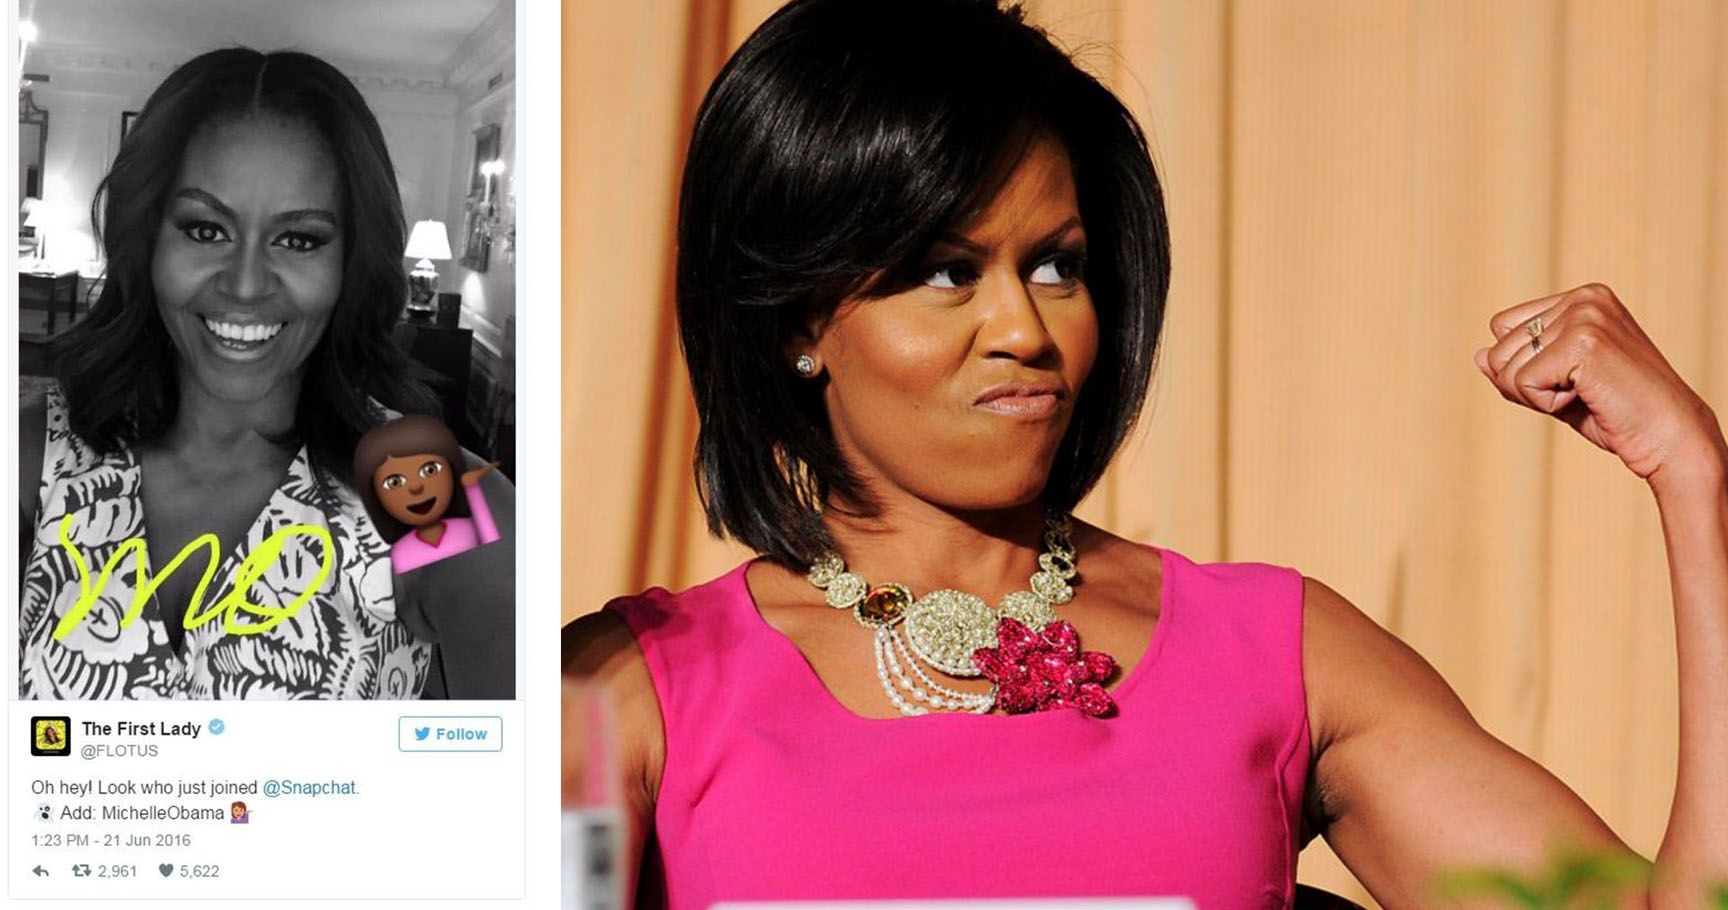 15 Reasons Why We'll Miss Michelle Obama As The First Lady